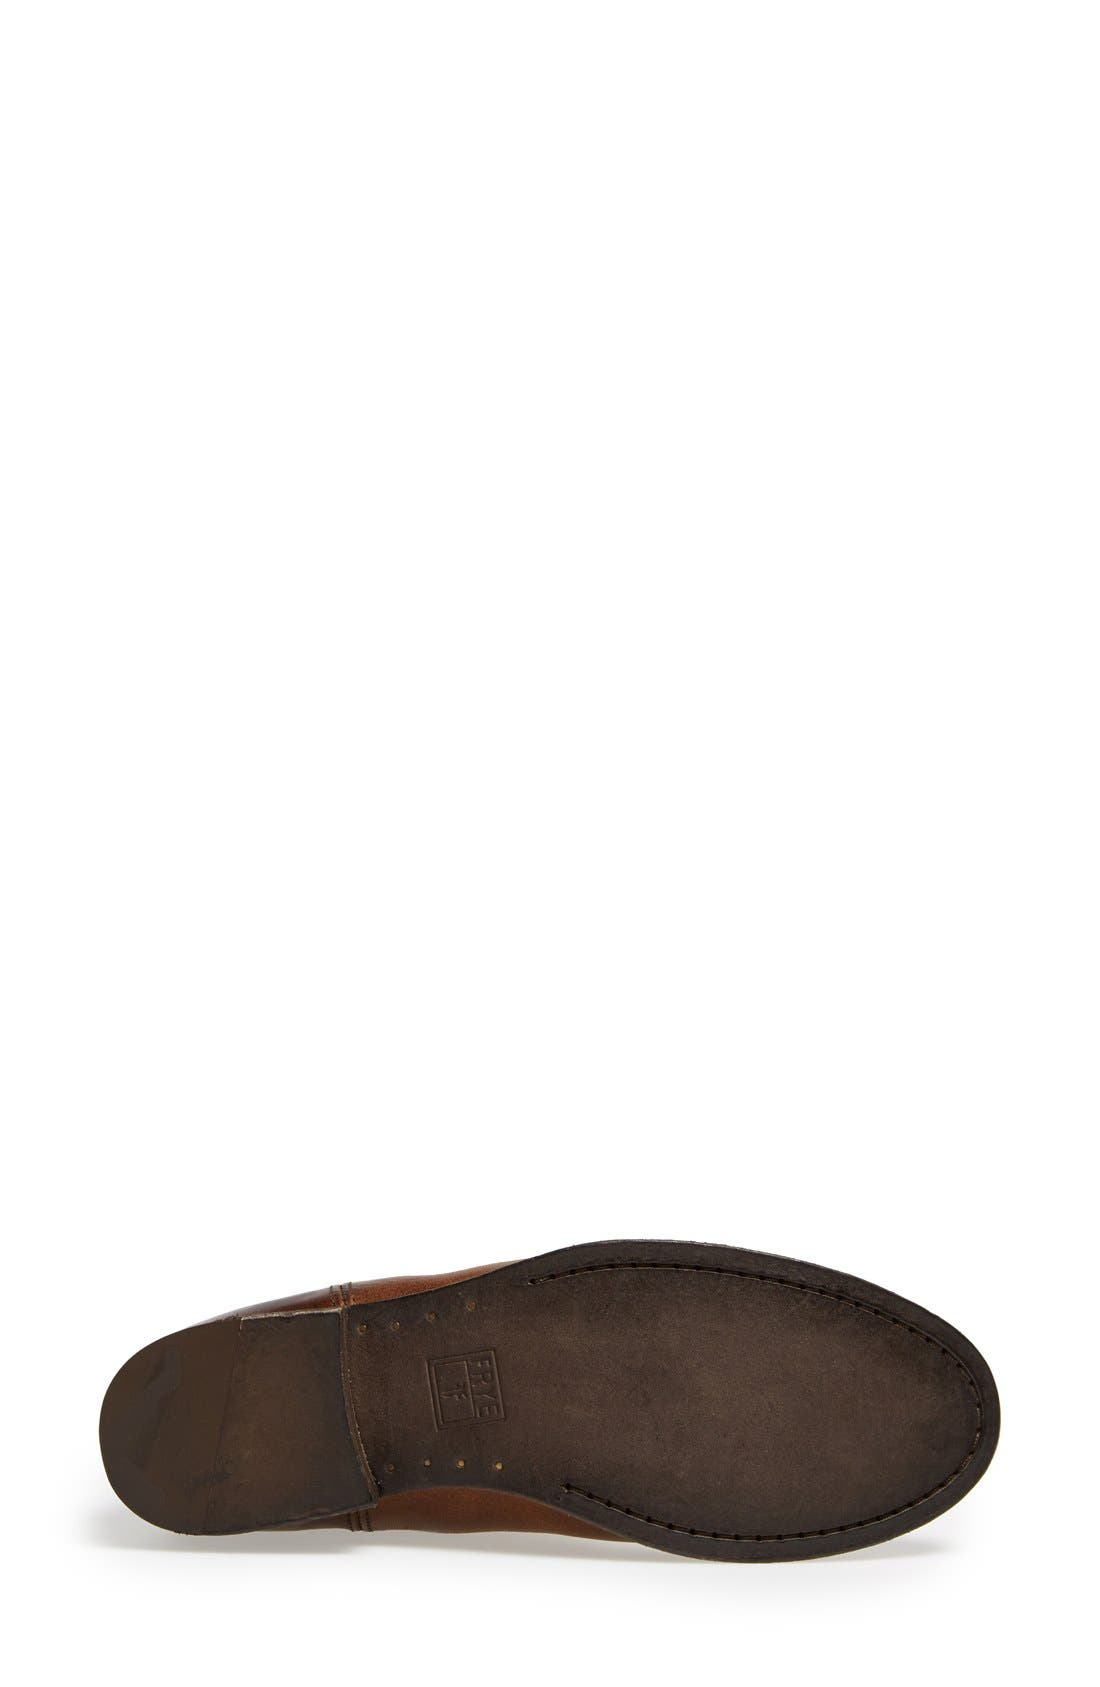 'Melissa Button' Leather Riding Boot,                             Alternate thumbnail 97, color,